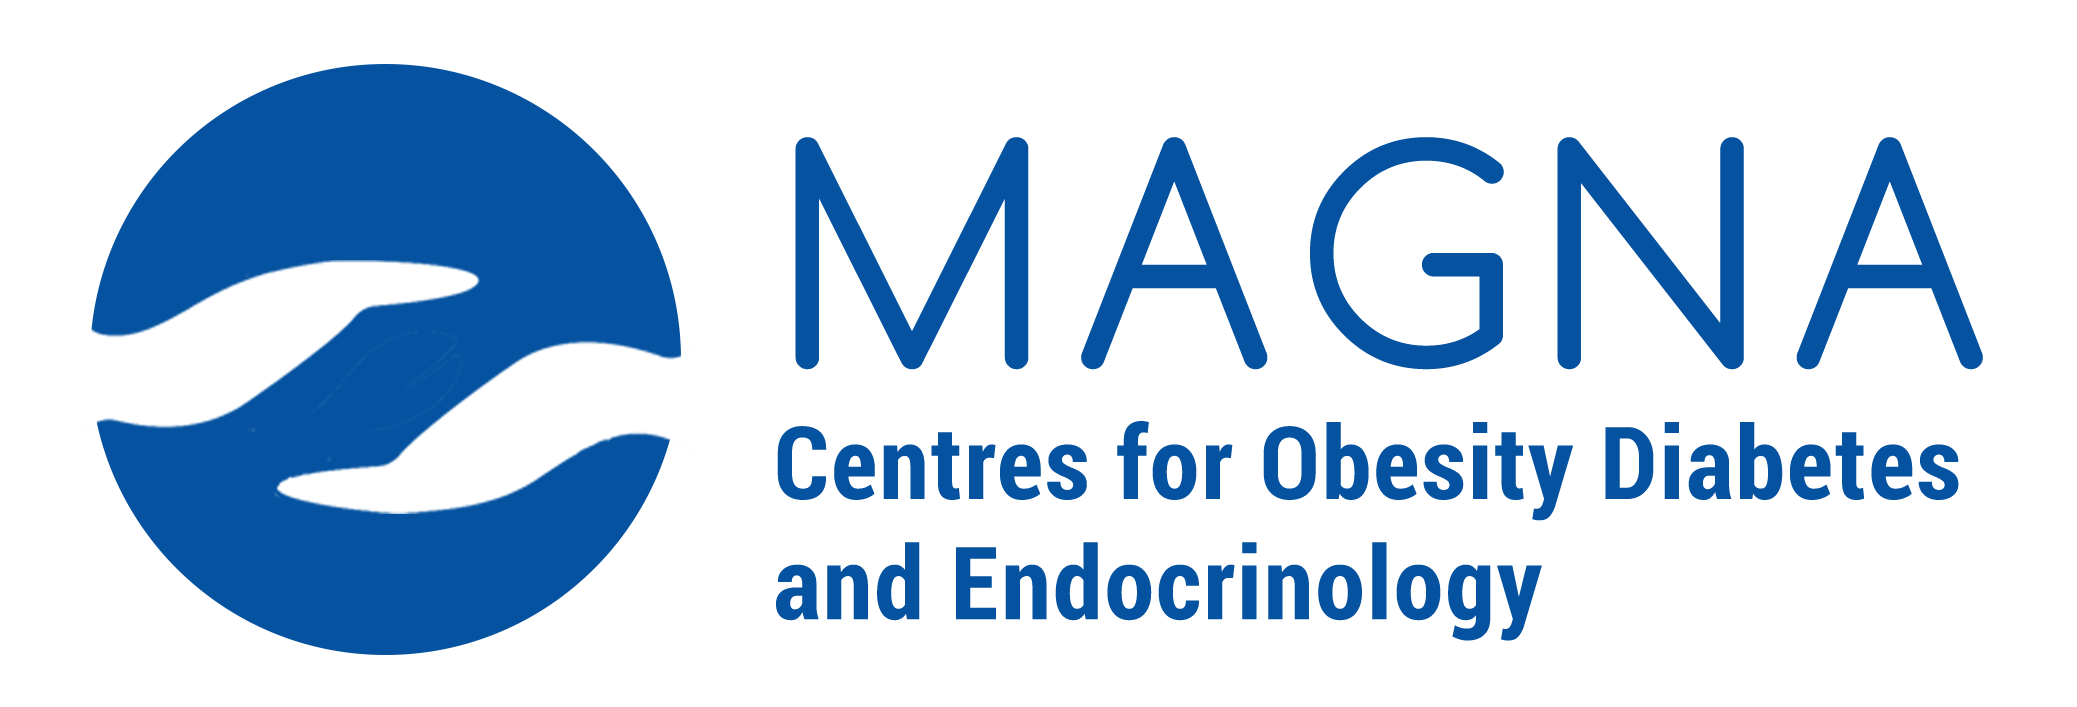 Magna Centres for Obesity,Diabetes & Endocrinology   Lybrate.com